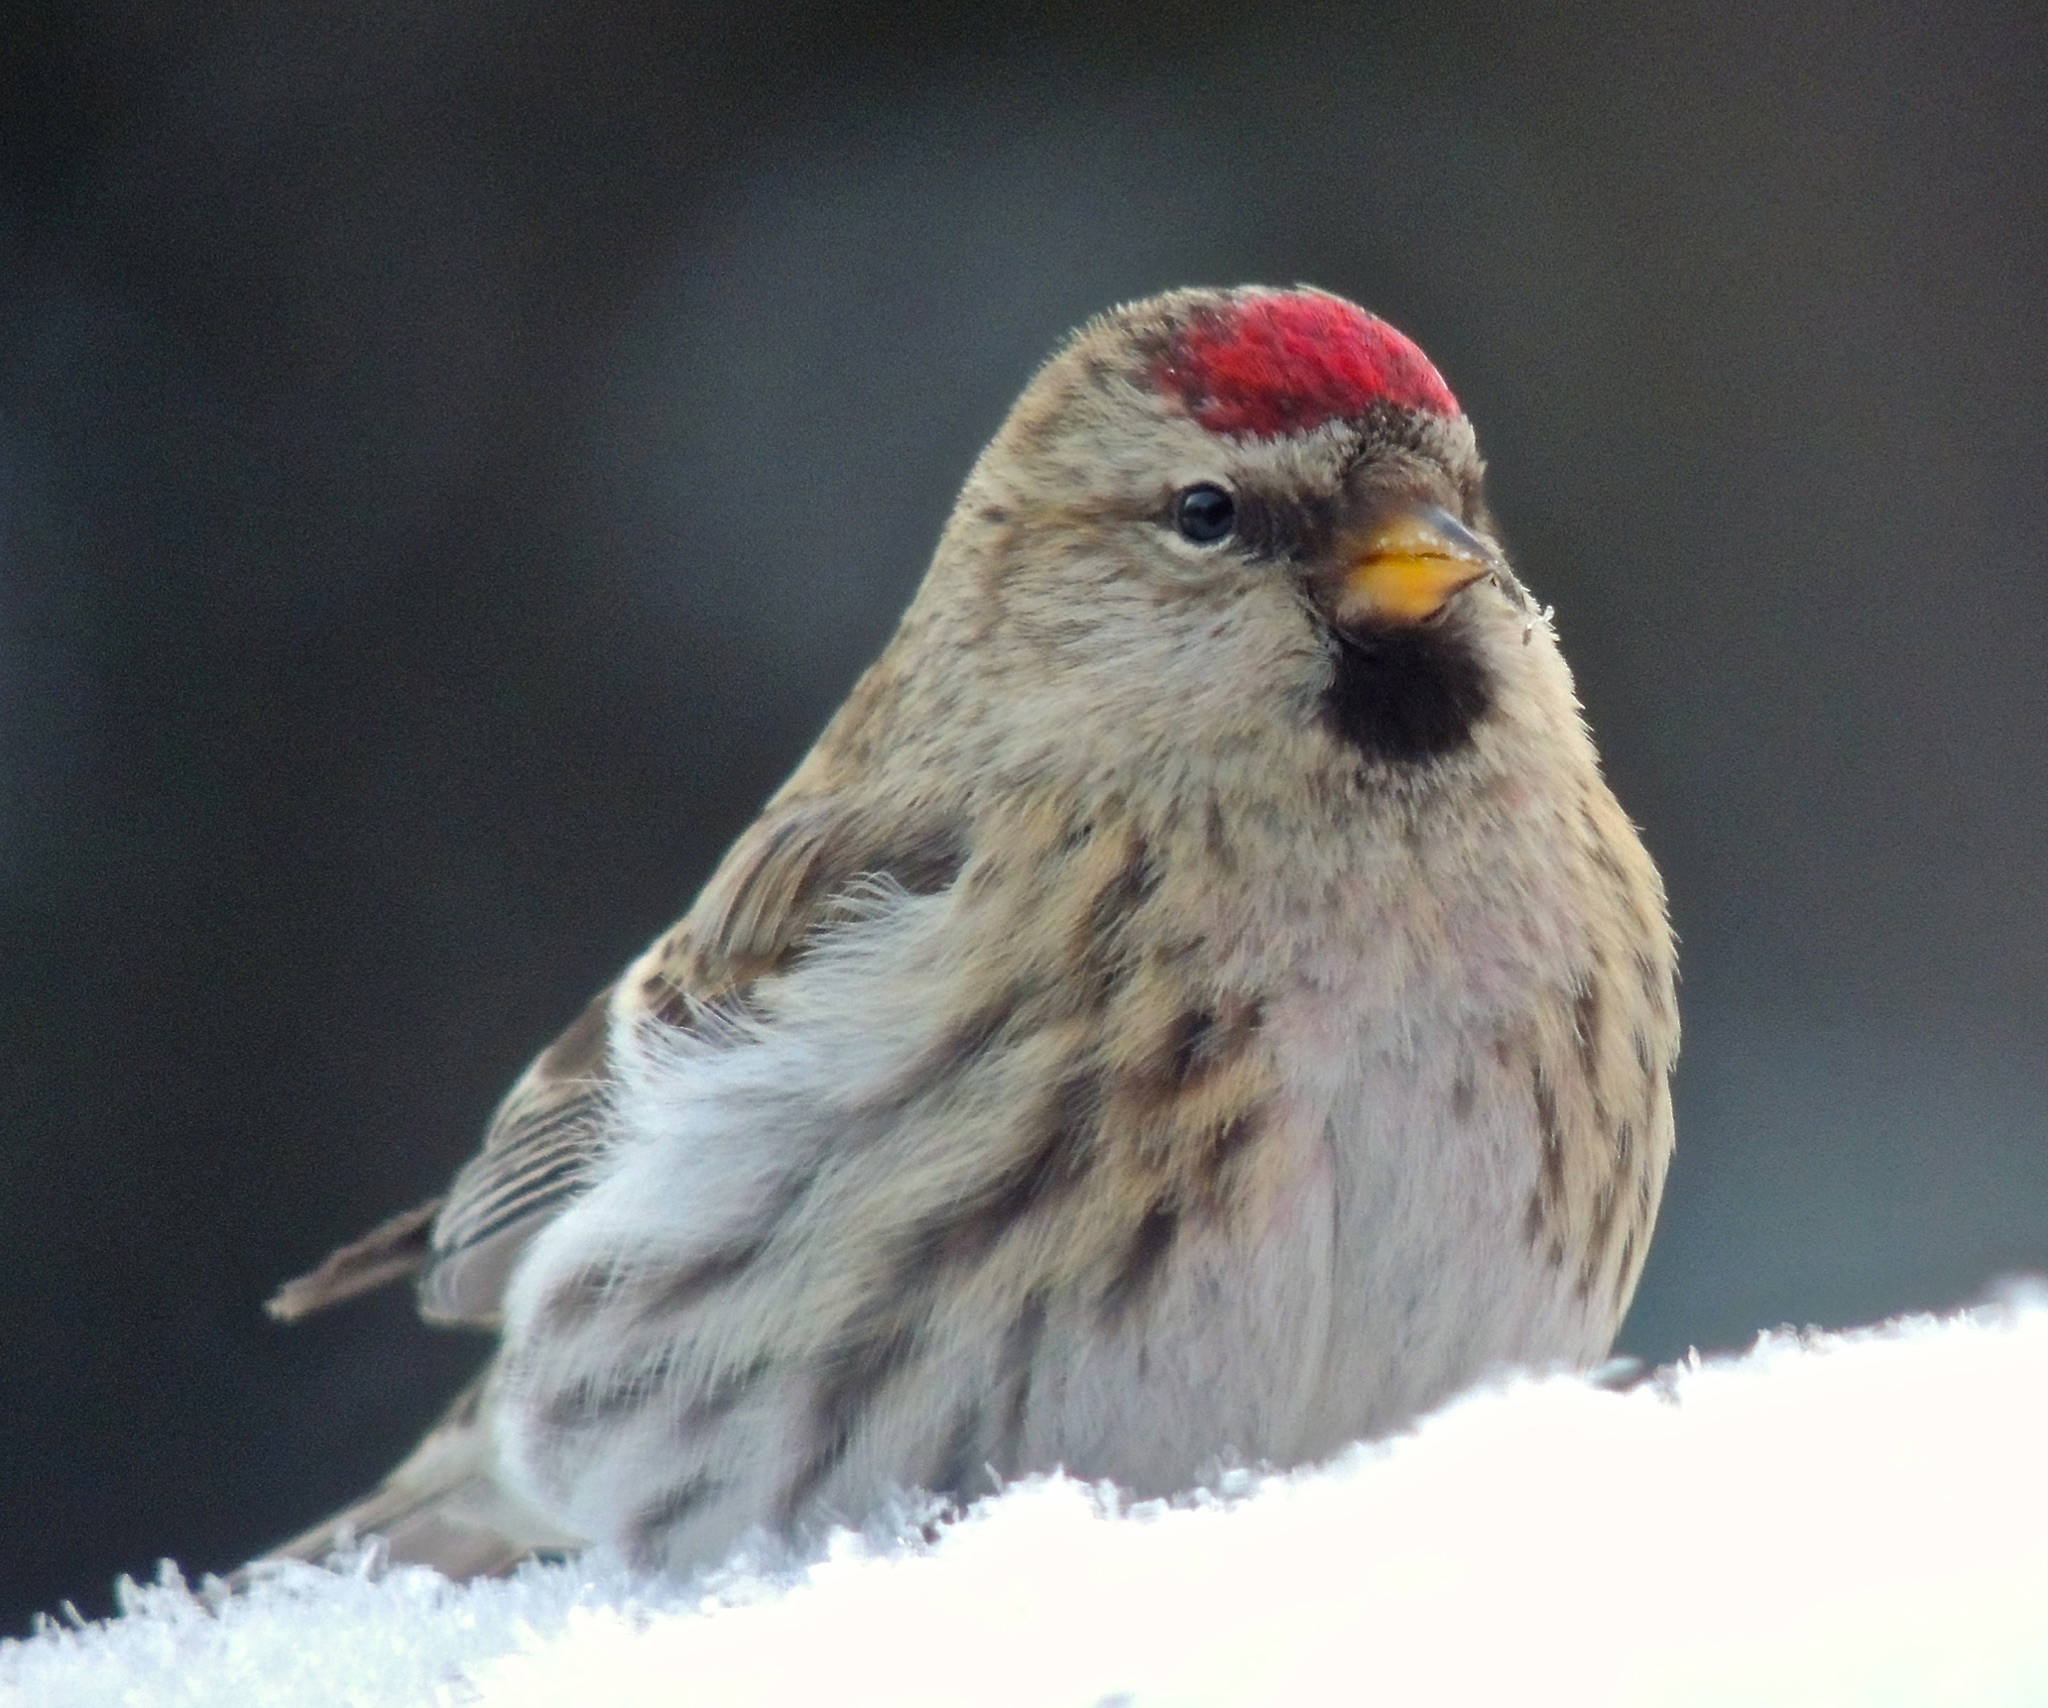 Common redpolls in Fairbanks. (Courtesy Photo | Anne Ruggles)